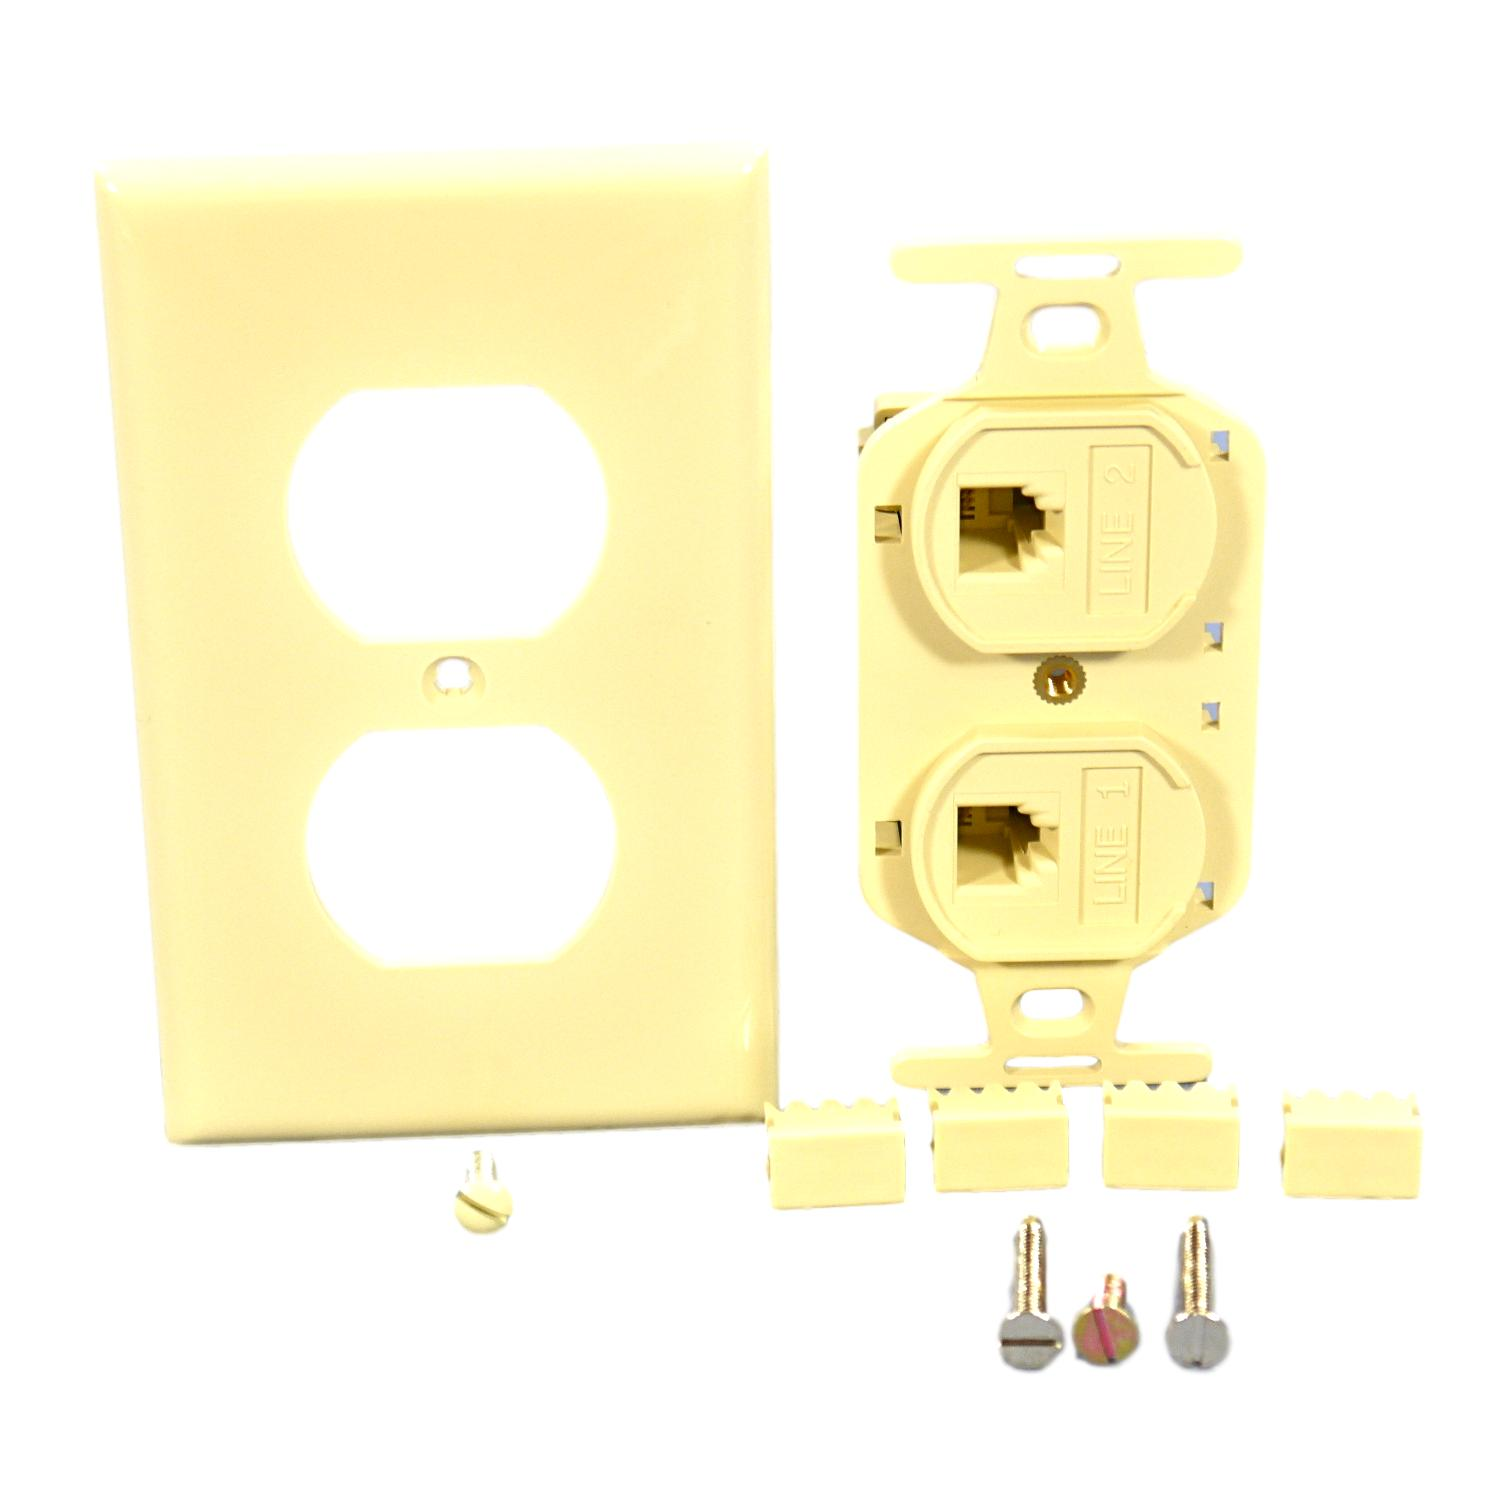 hight resolution of leviton duplex ivory flush phone jack 110 type voice 4 wire type 106 41364 idi walmart com